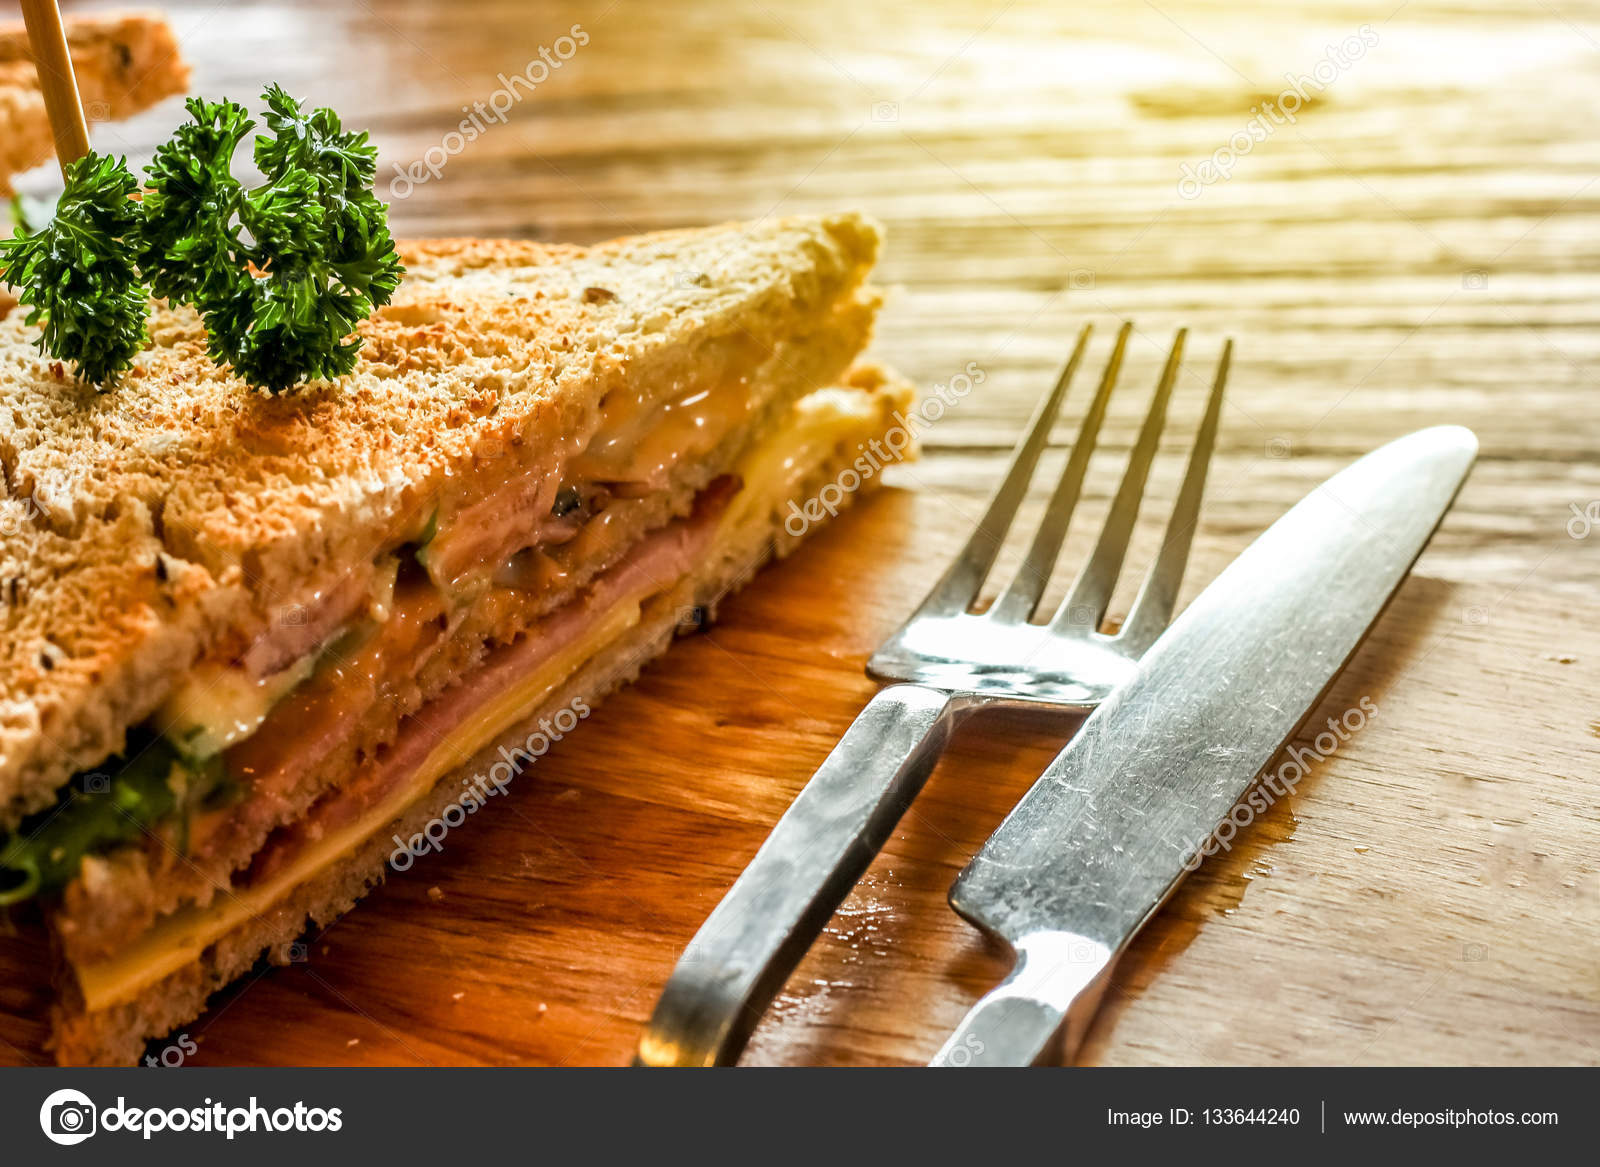 Club sandwich on the wood plate decorate together with fork and knight on the bark wood table background \u2014 Photo by bookybuggy.gmail.com & Club sandwich on the wood plate decorate together with fork and ...